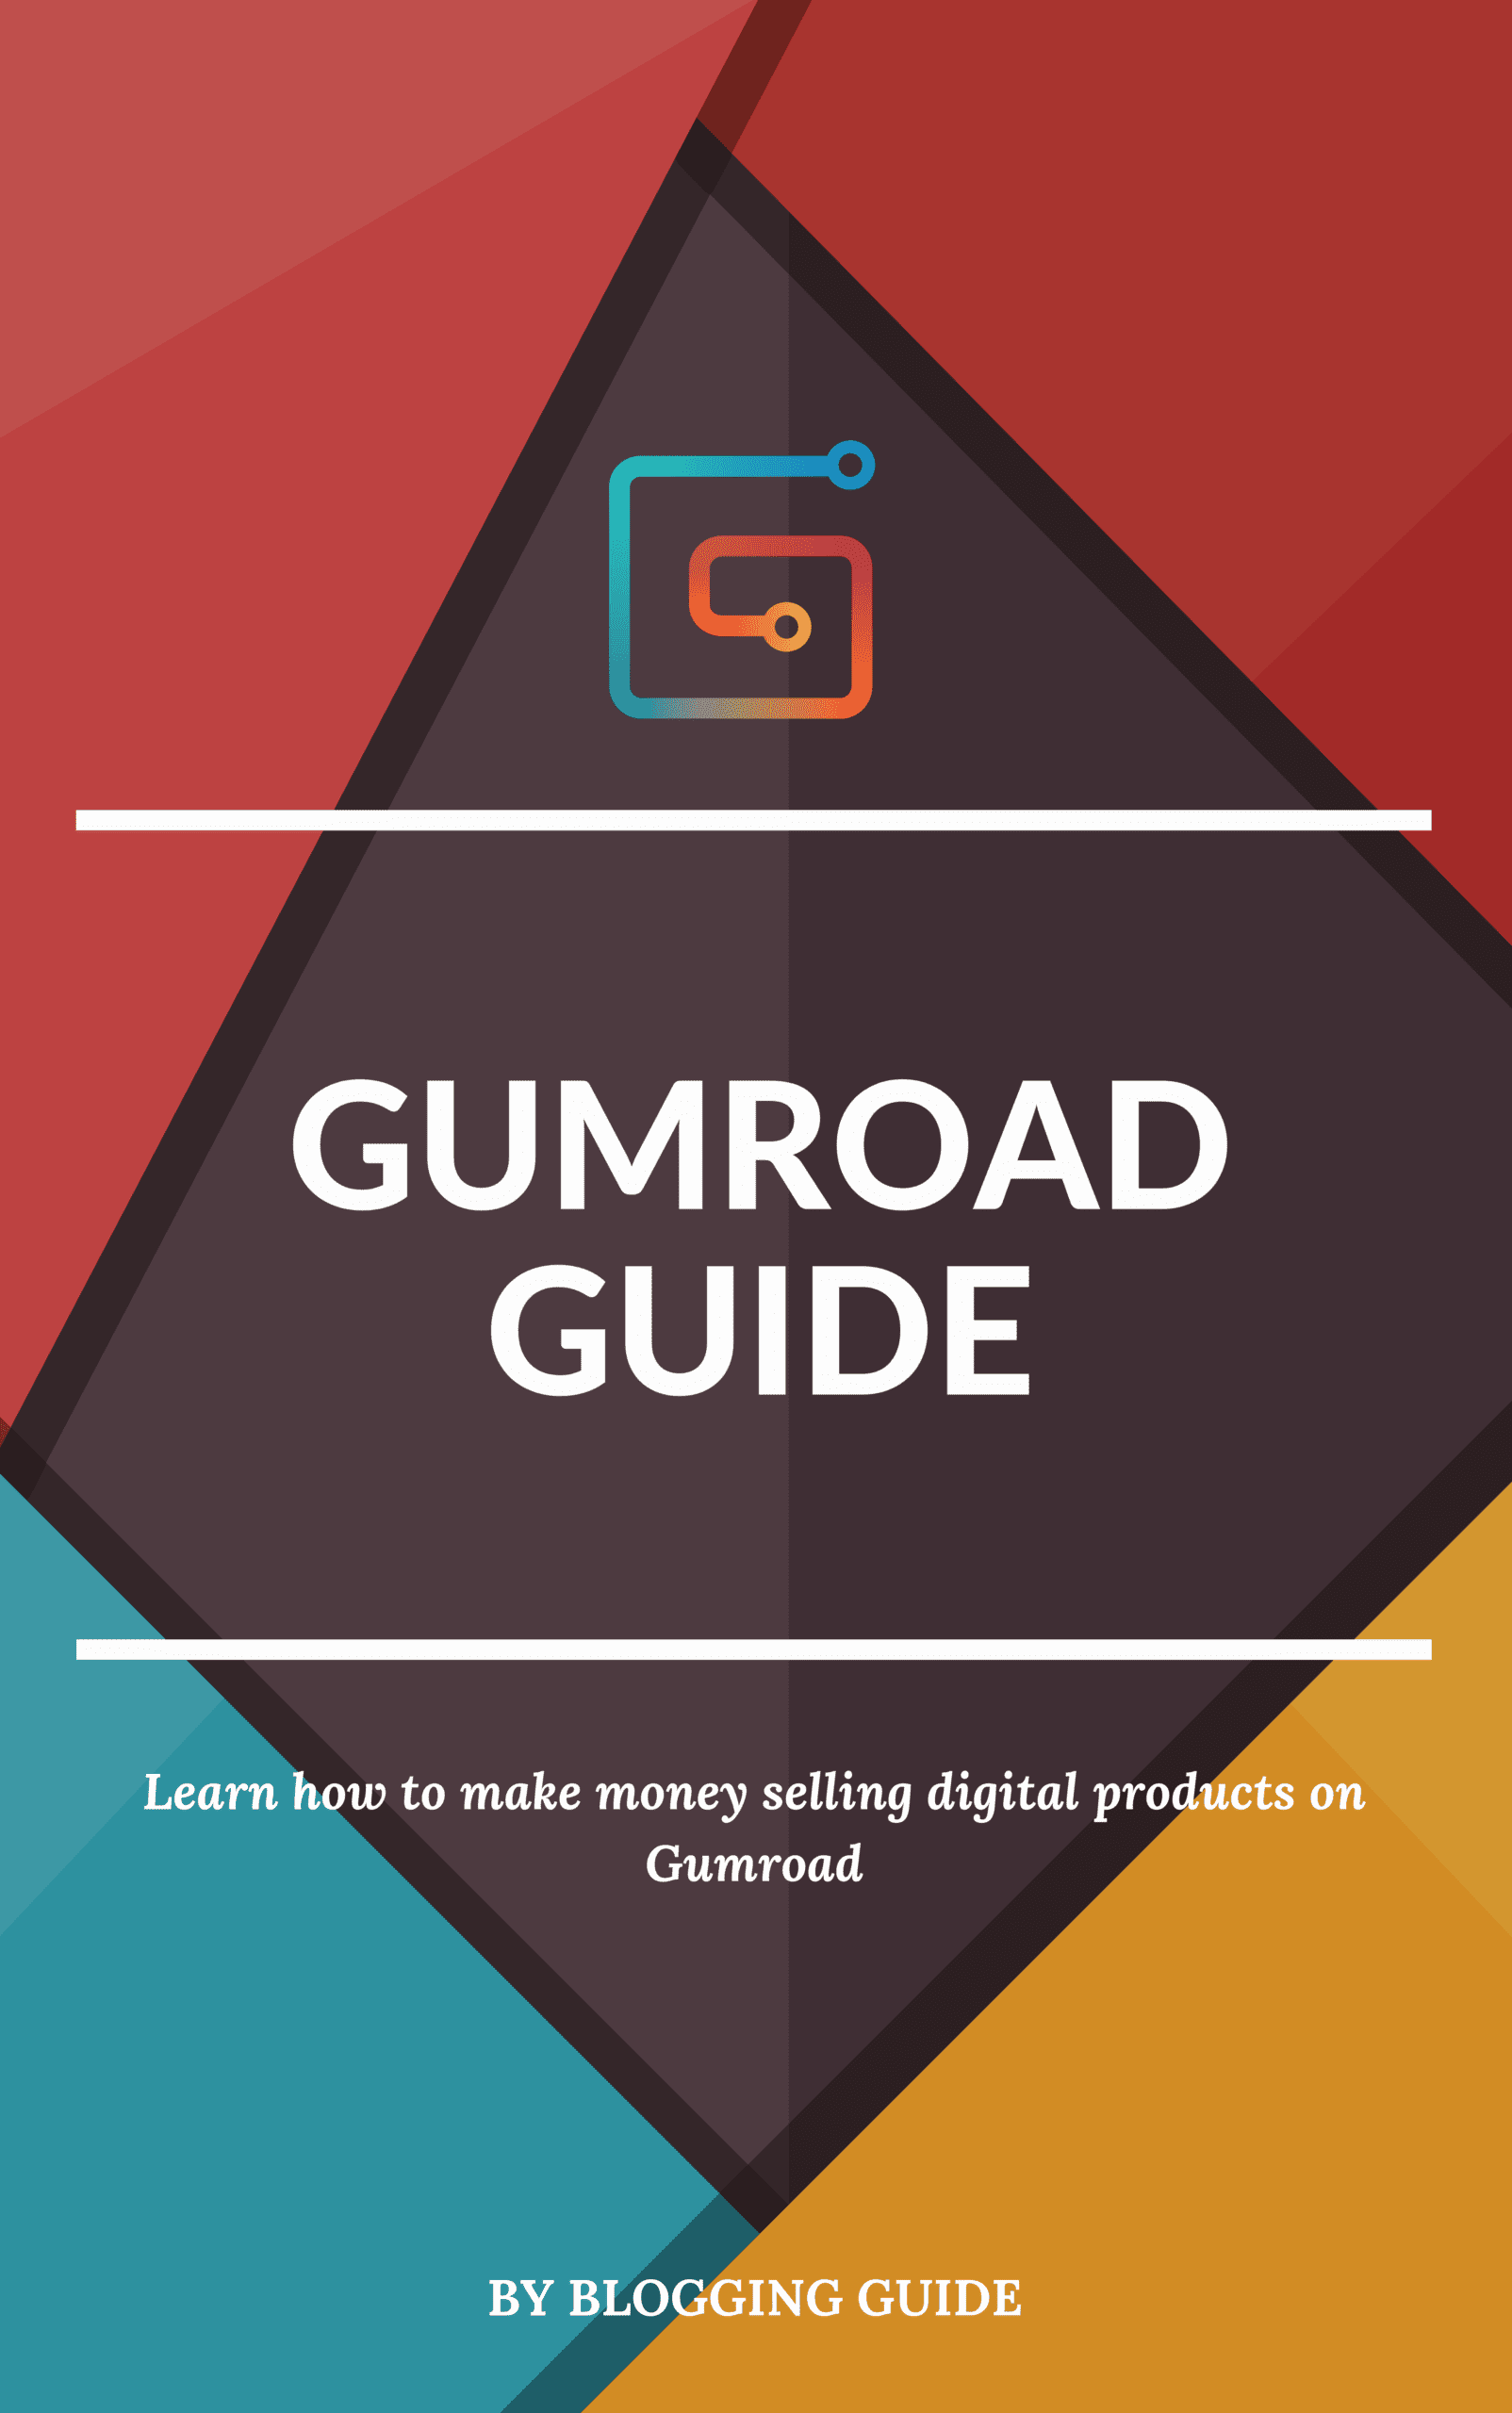 gumroad guide, making money on gumroad, gumroad ebook, gumroad book, gumroad course, how to use gumroad